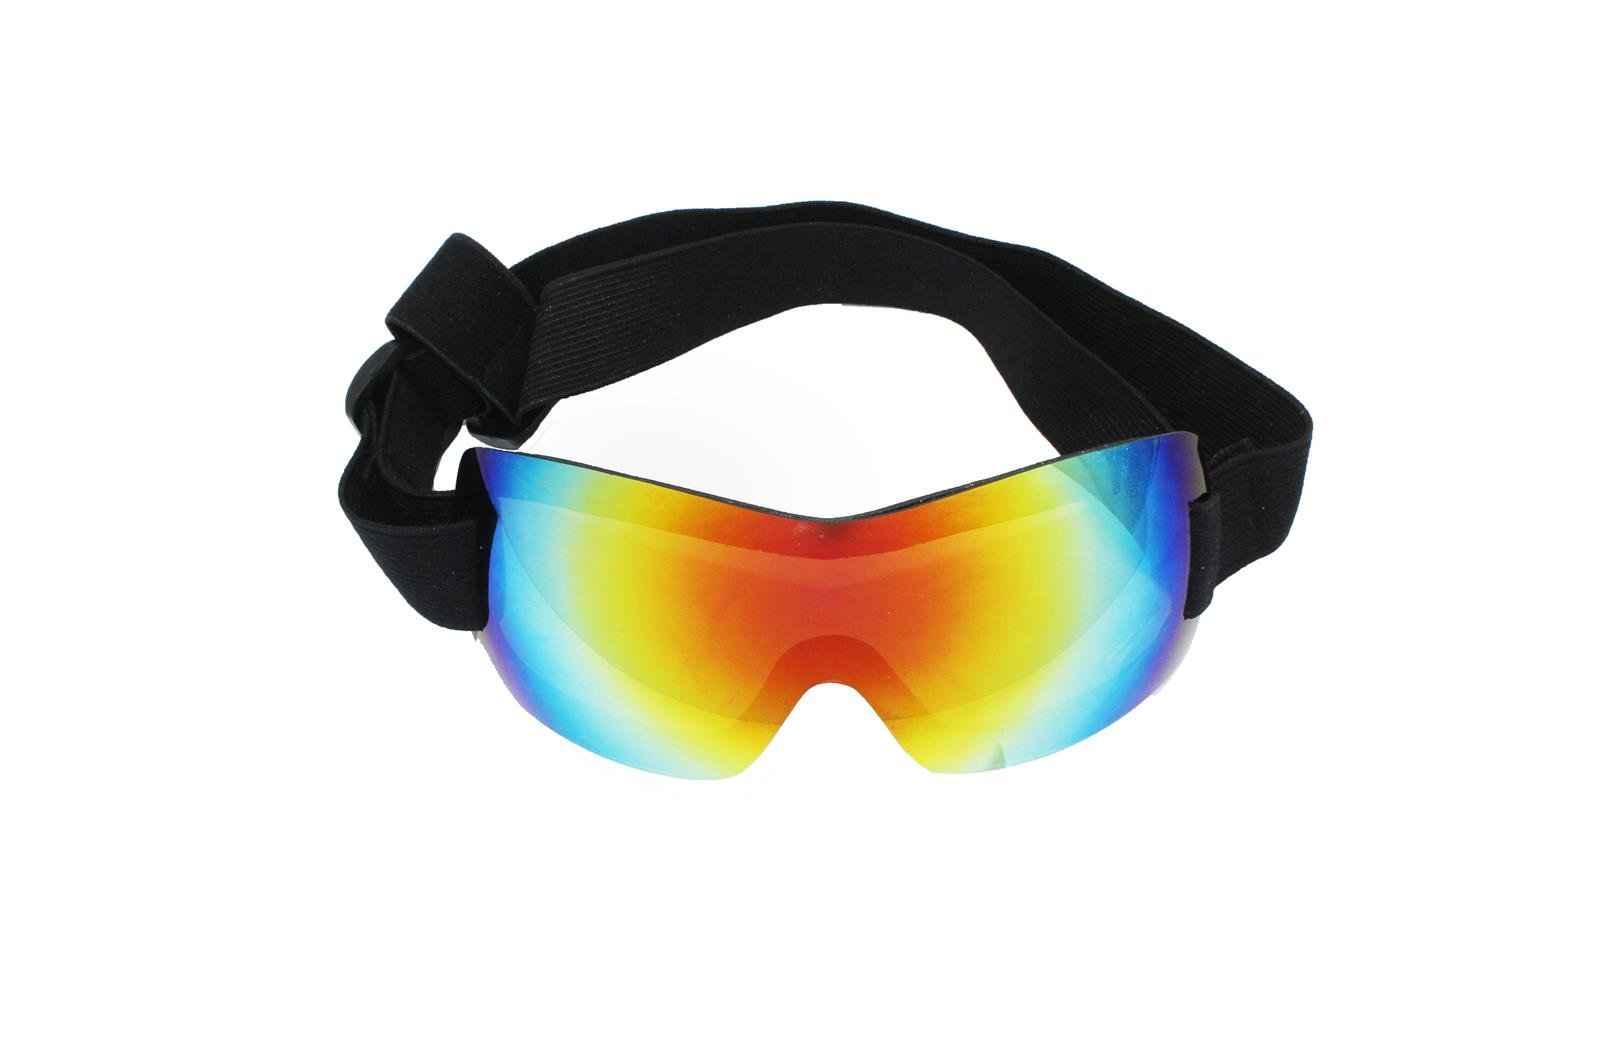 Dog Sunglasses Ski Goggles - PetRich Eye Wear UV Protection, Waterproof Multi-Color Pet Sunglasses with Adjustable Strap for Large Dogs Travel, Skiing,Surfing,Driving Including Humanized Design